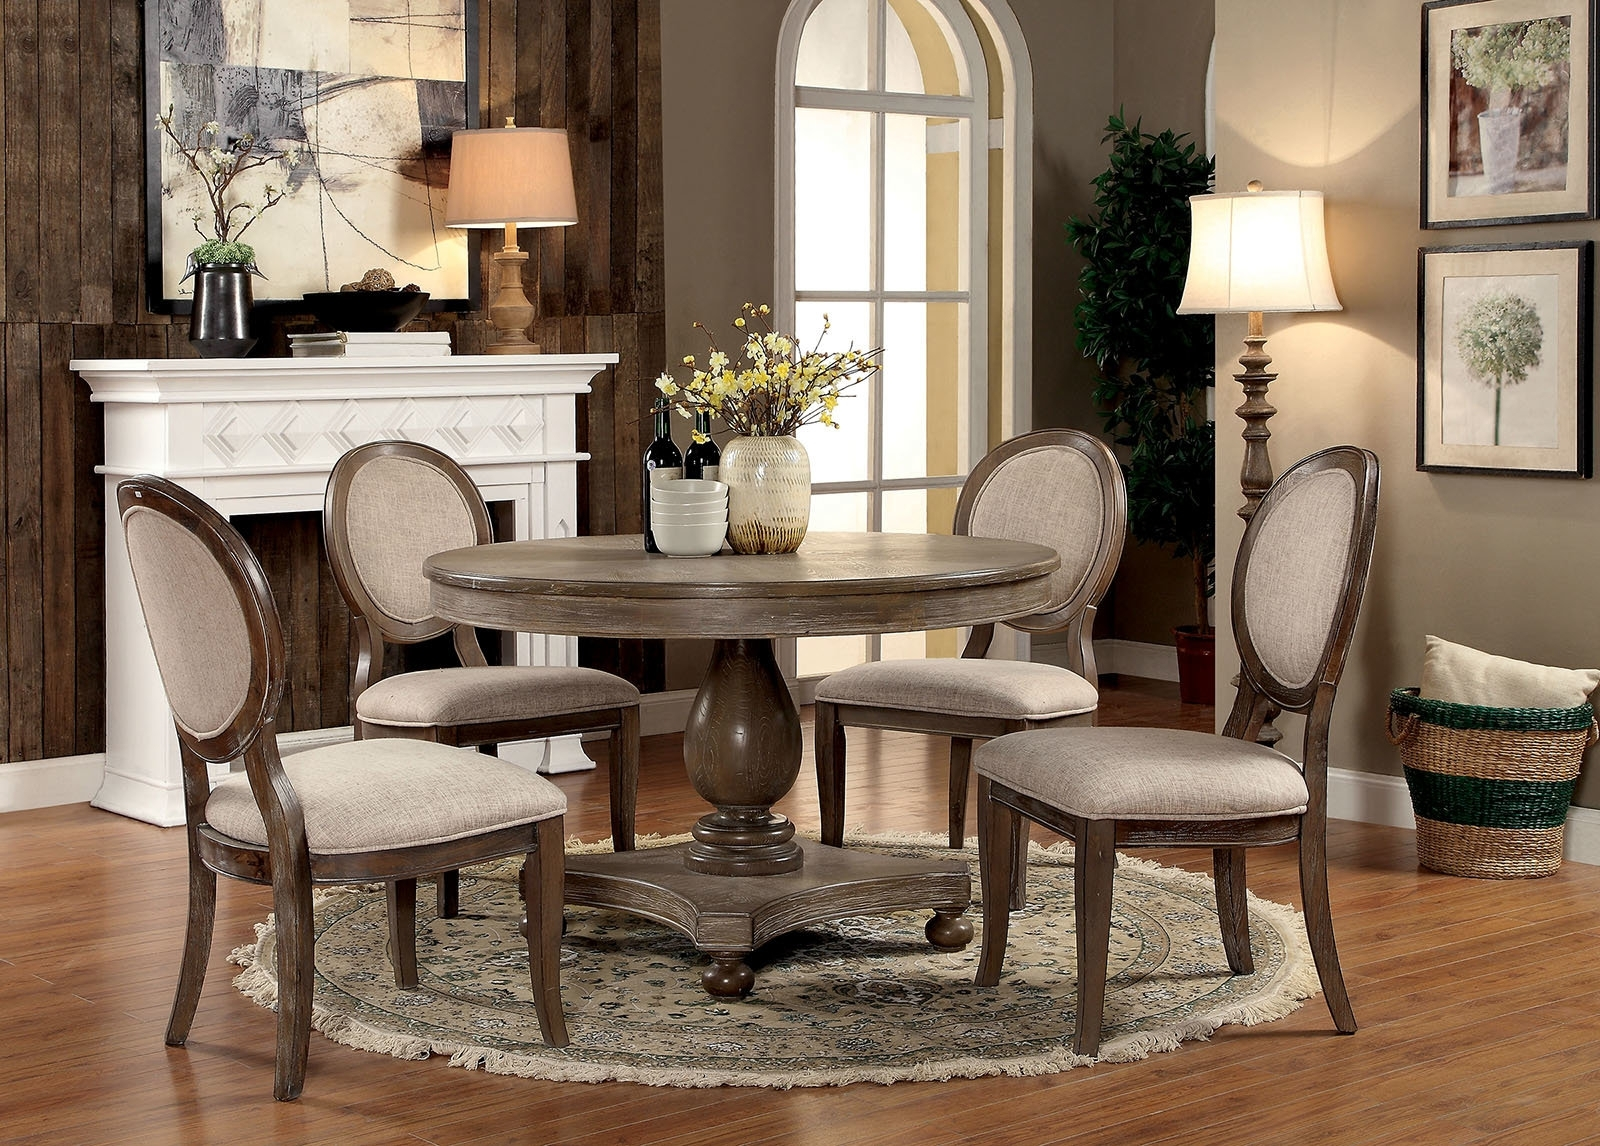 Wayfair With Craftsman 5 Piece Round Dining Sets With Side Chairs (View 23 of 25)